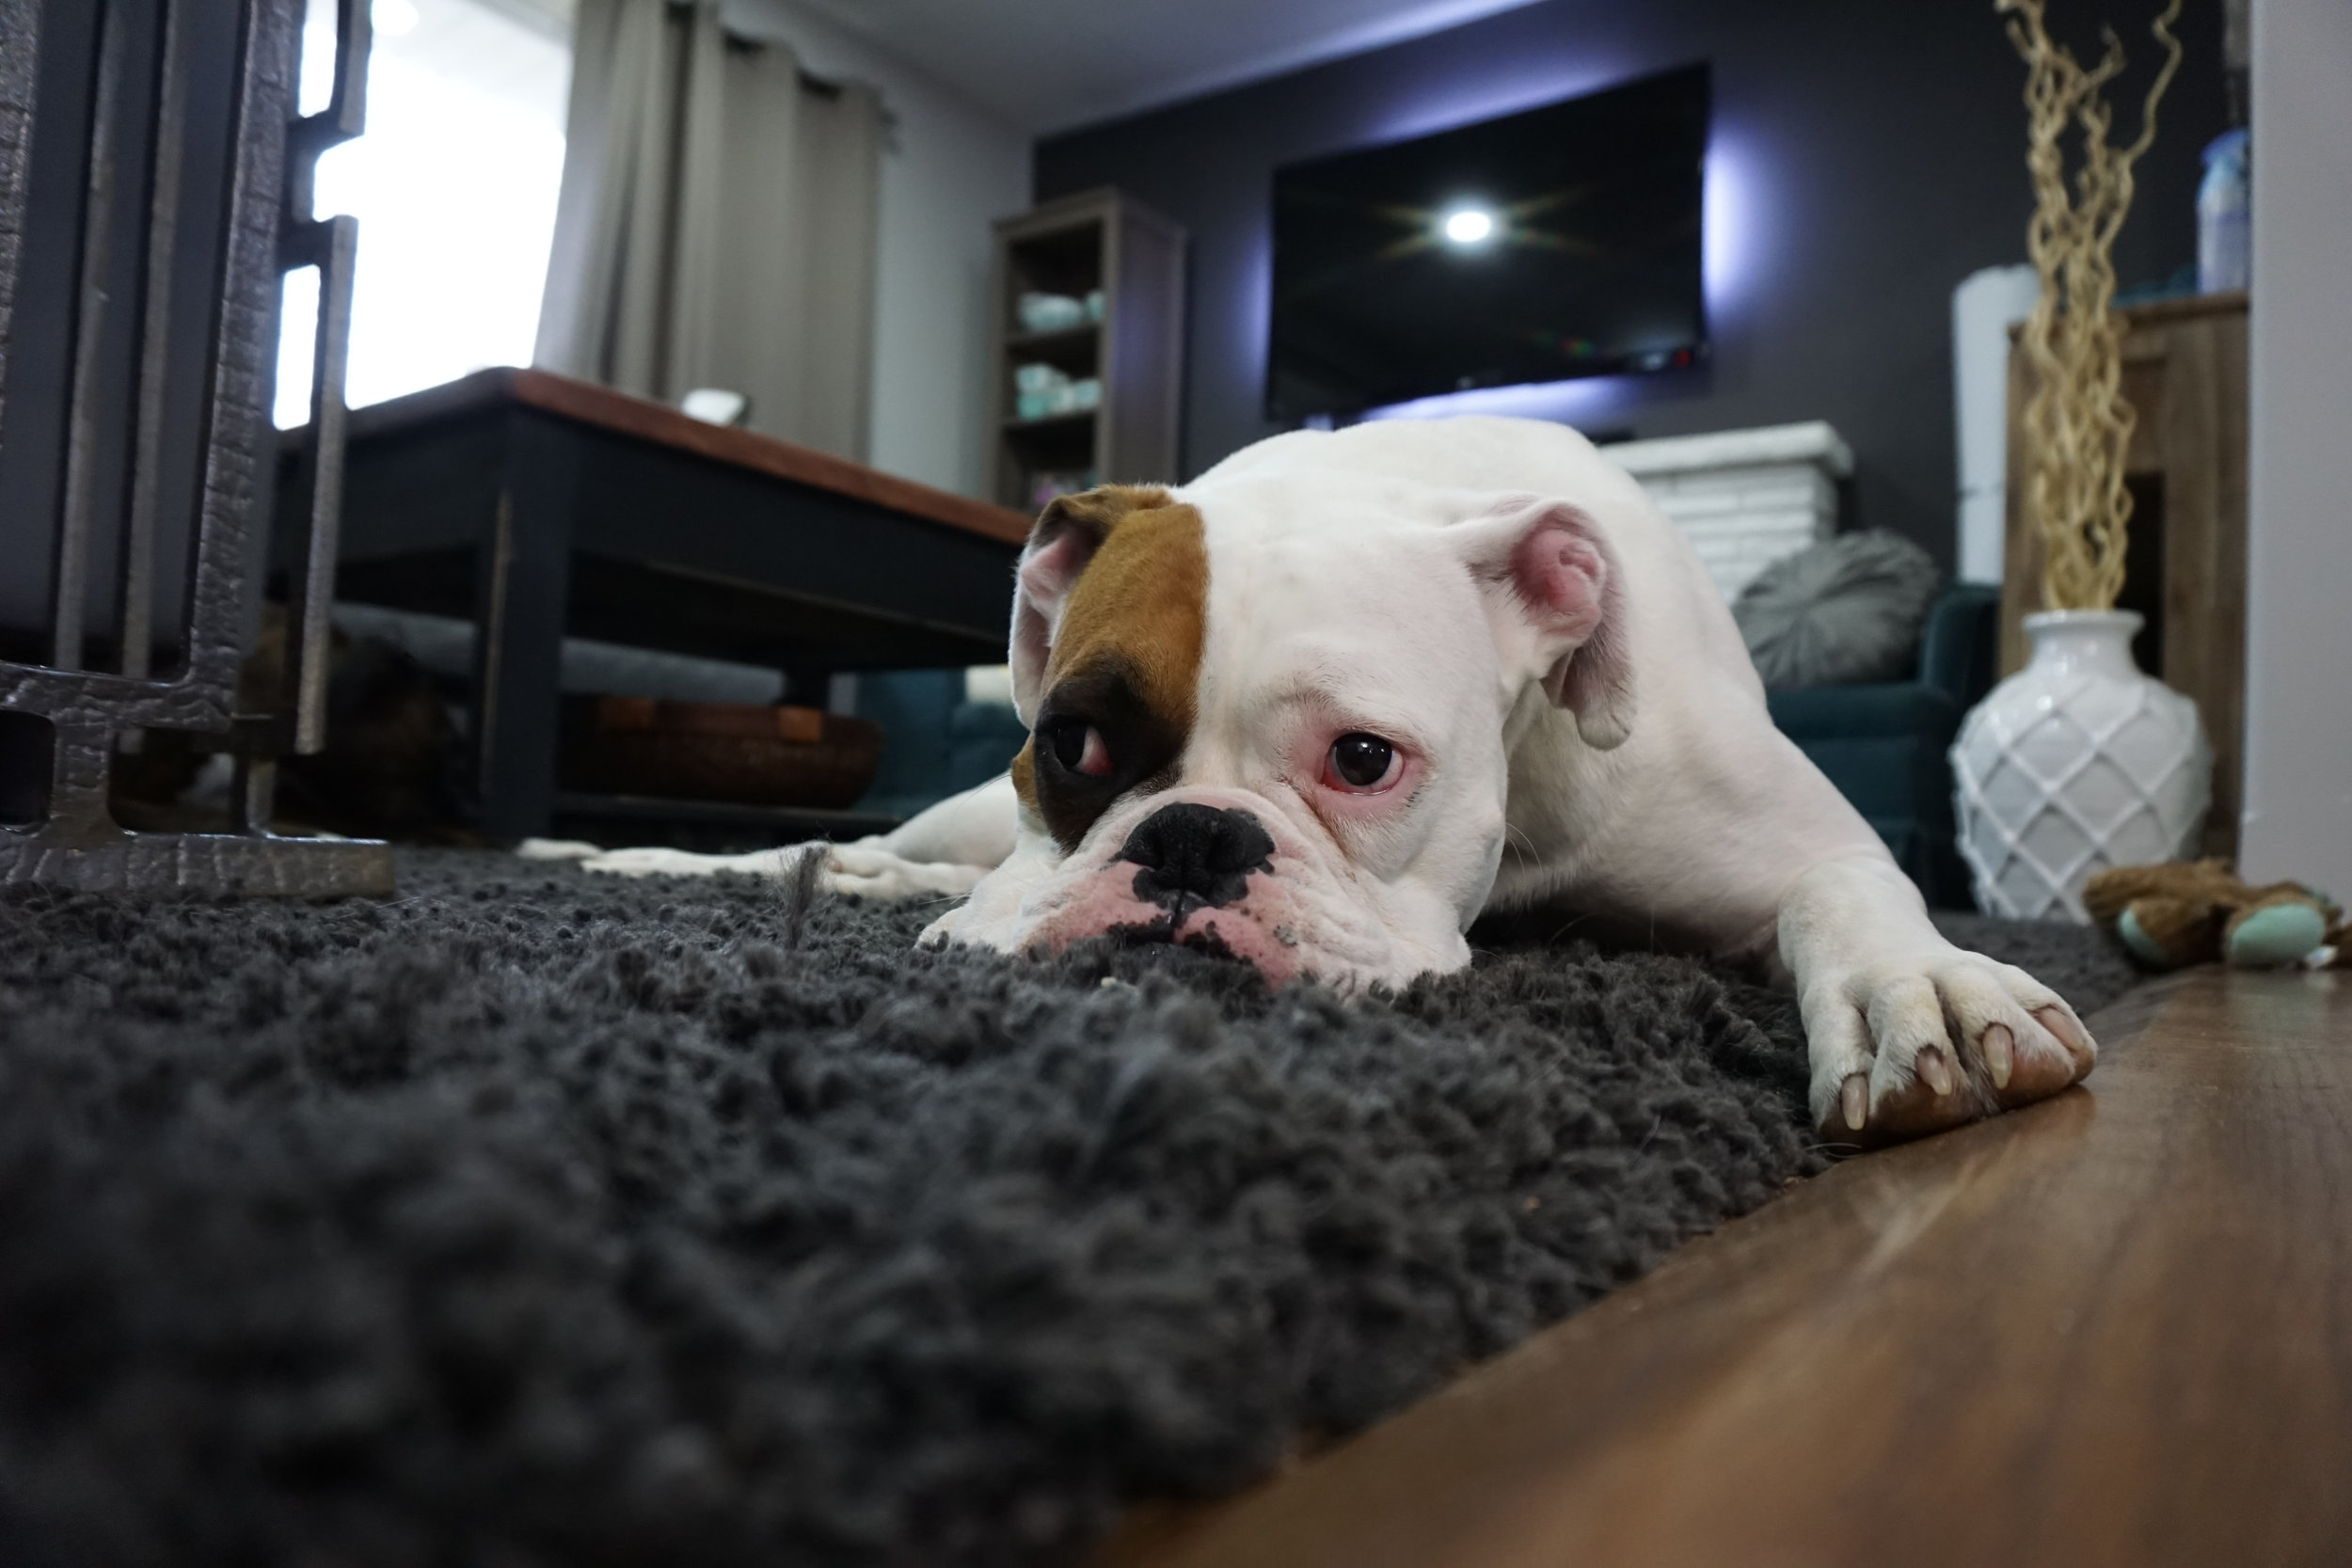 Canva - White and Tan English Bulldog Lying on Black Rug.jpg